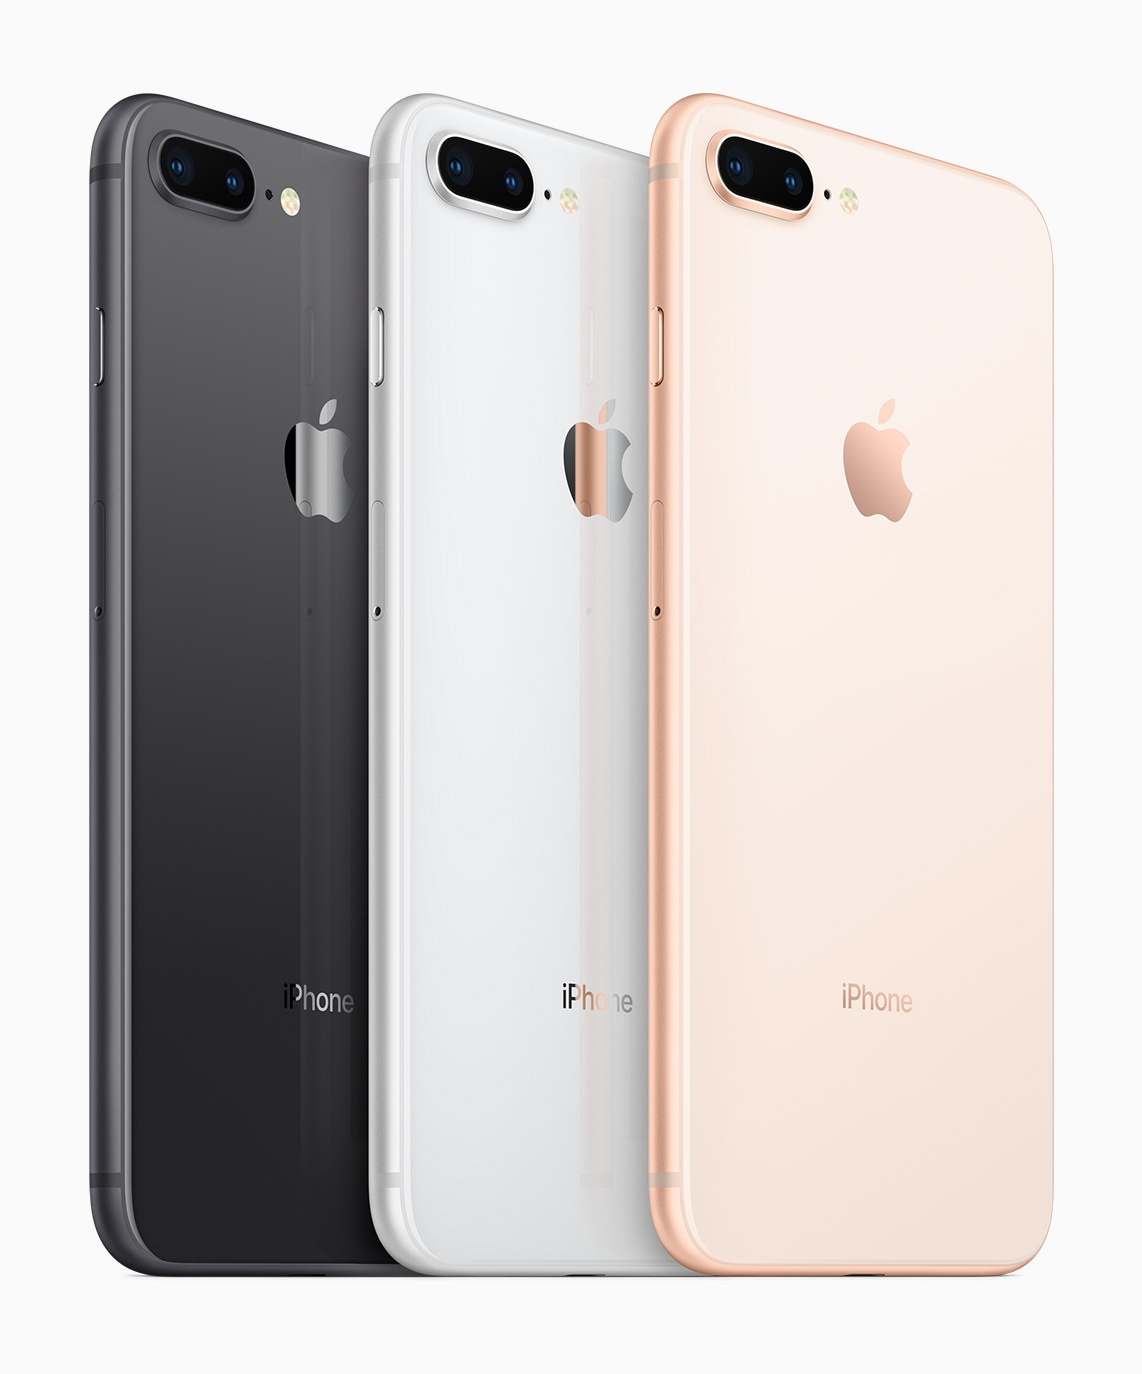 Todas as cores dos iPhones 8 Plus de trás na diagonal